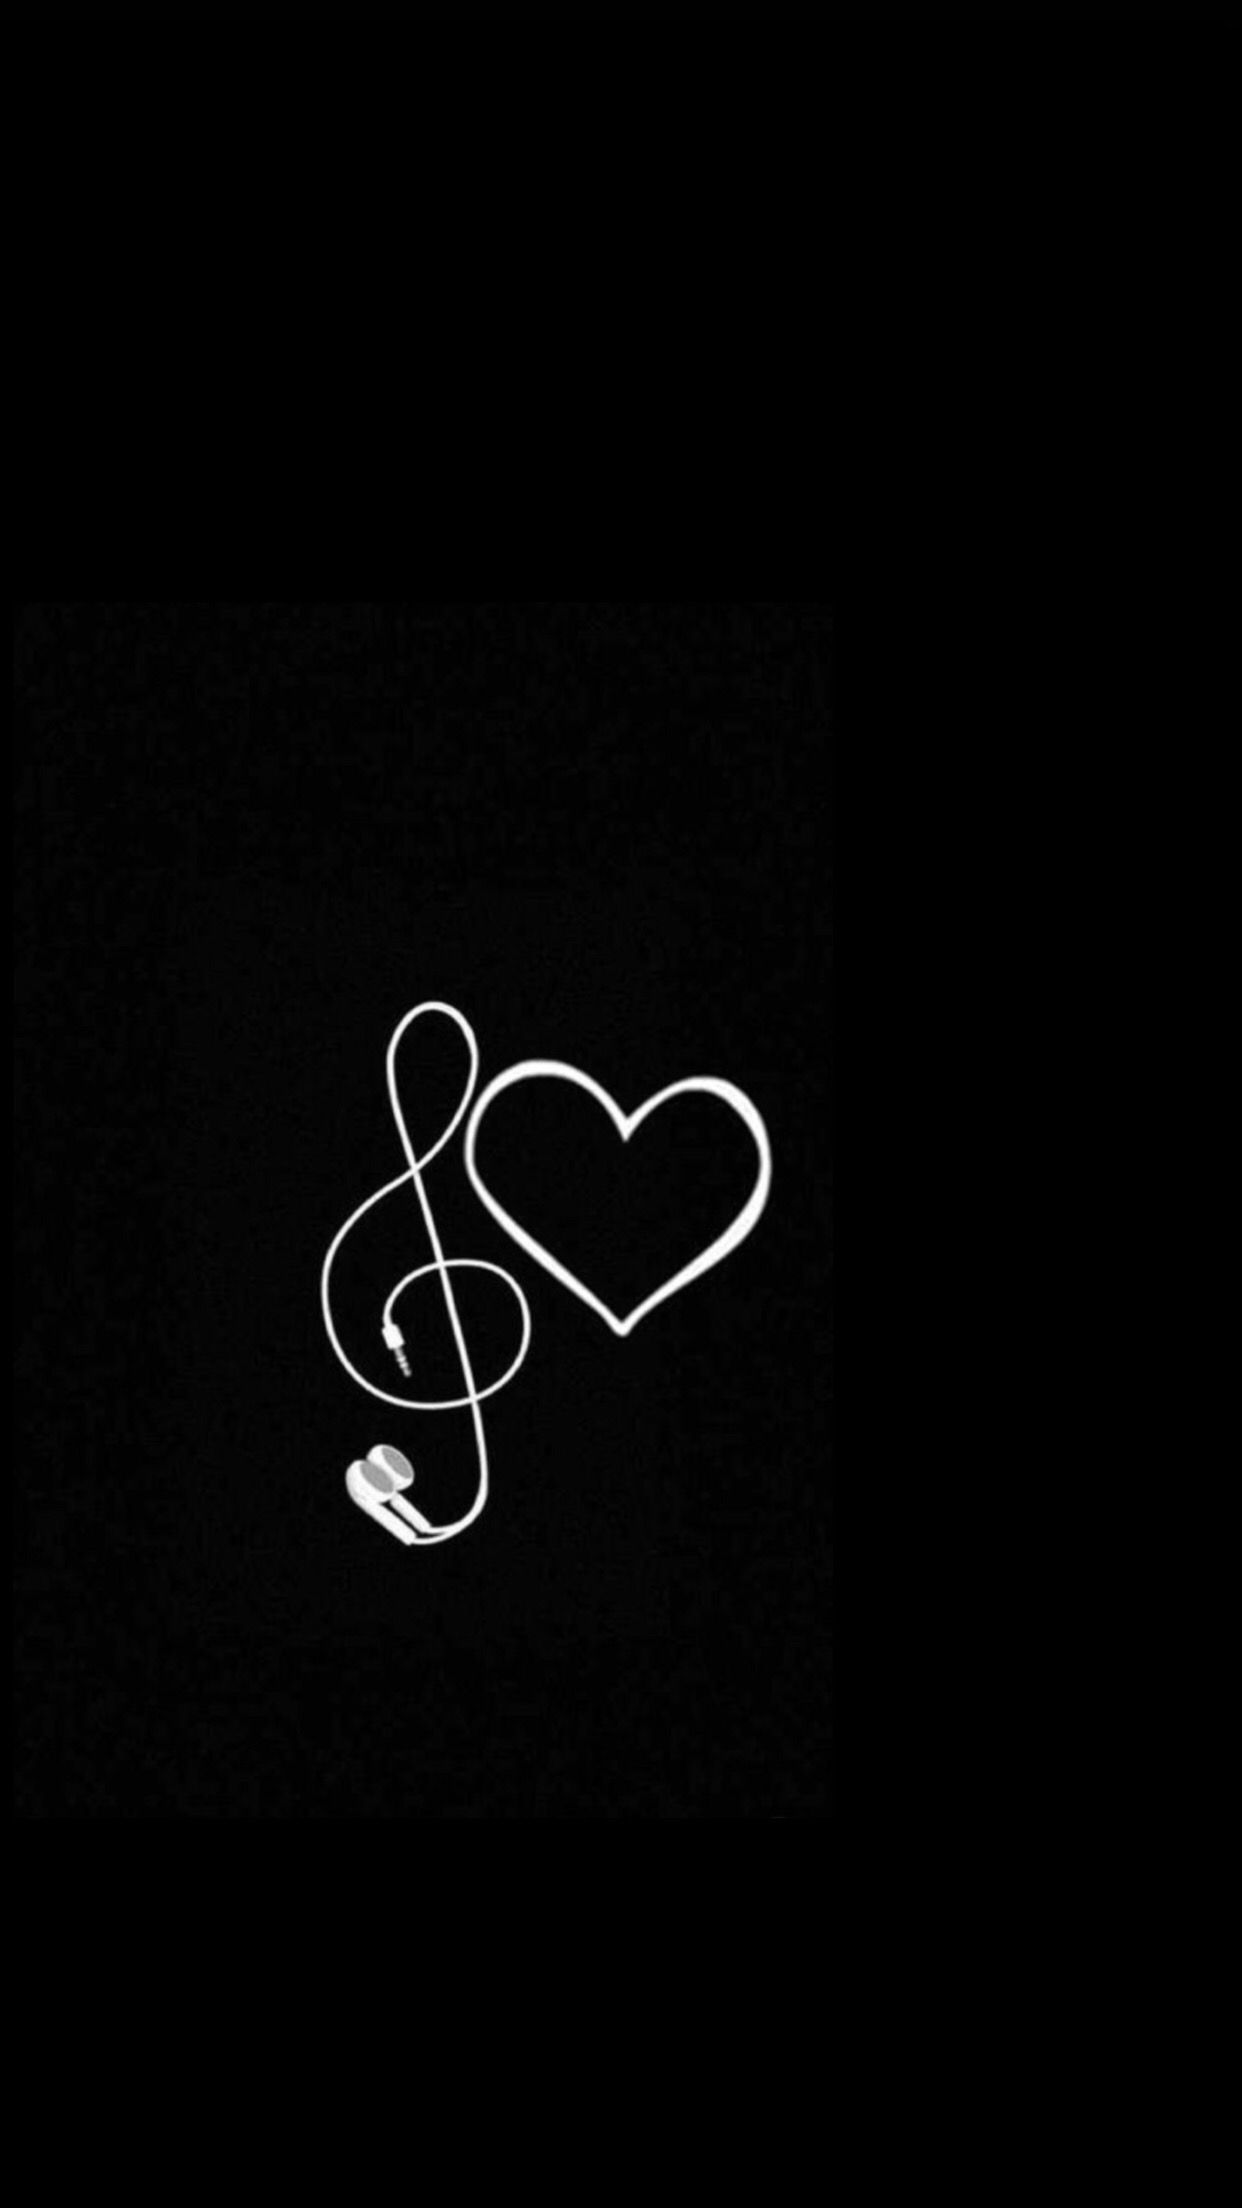 Recuerdos Phone Backgrounds Tumblr Music Backgrounds